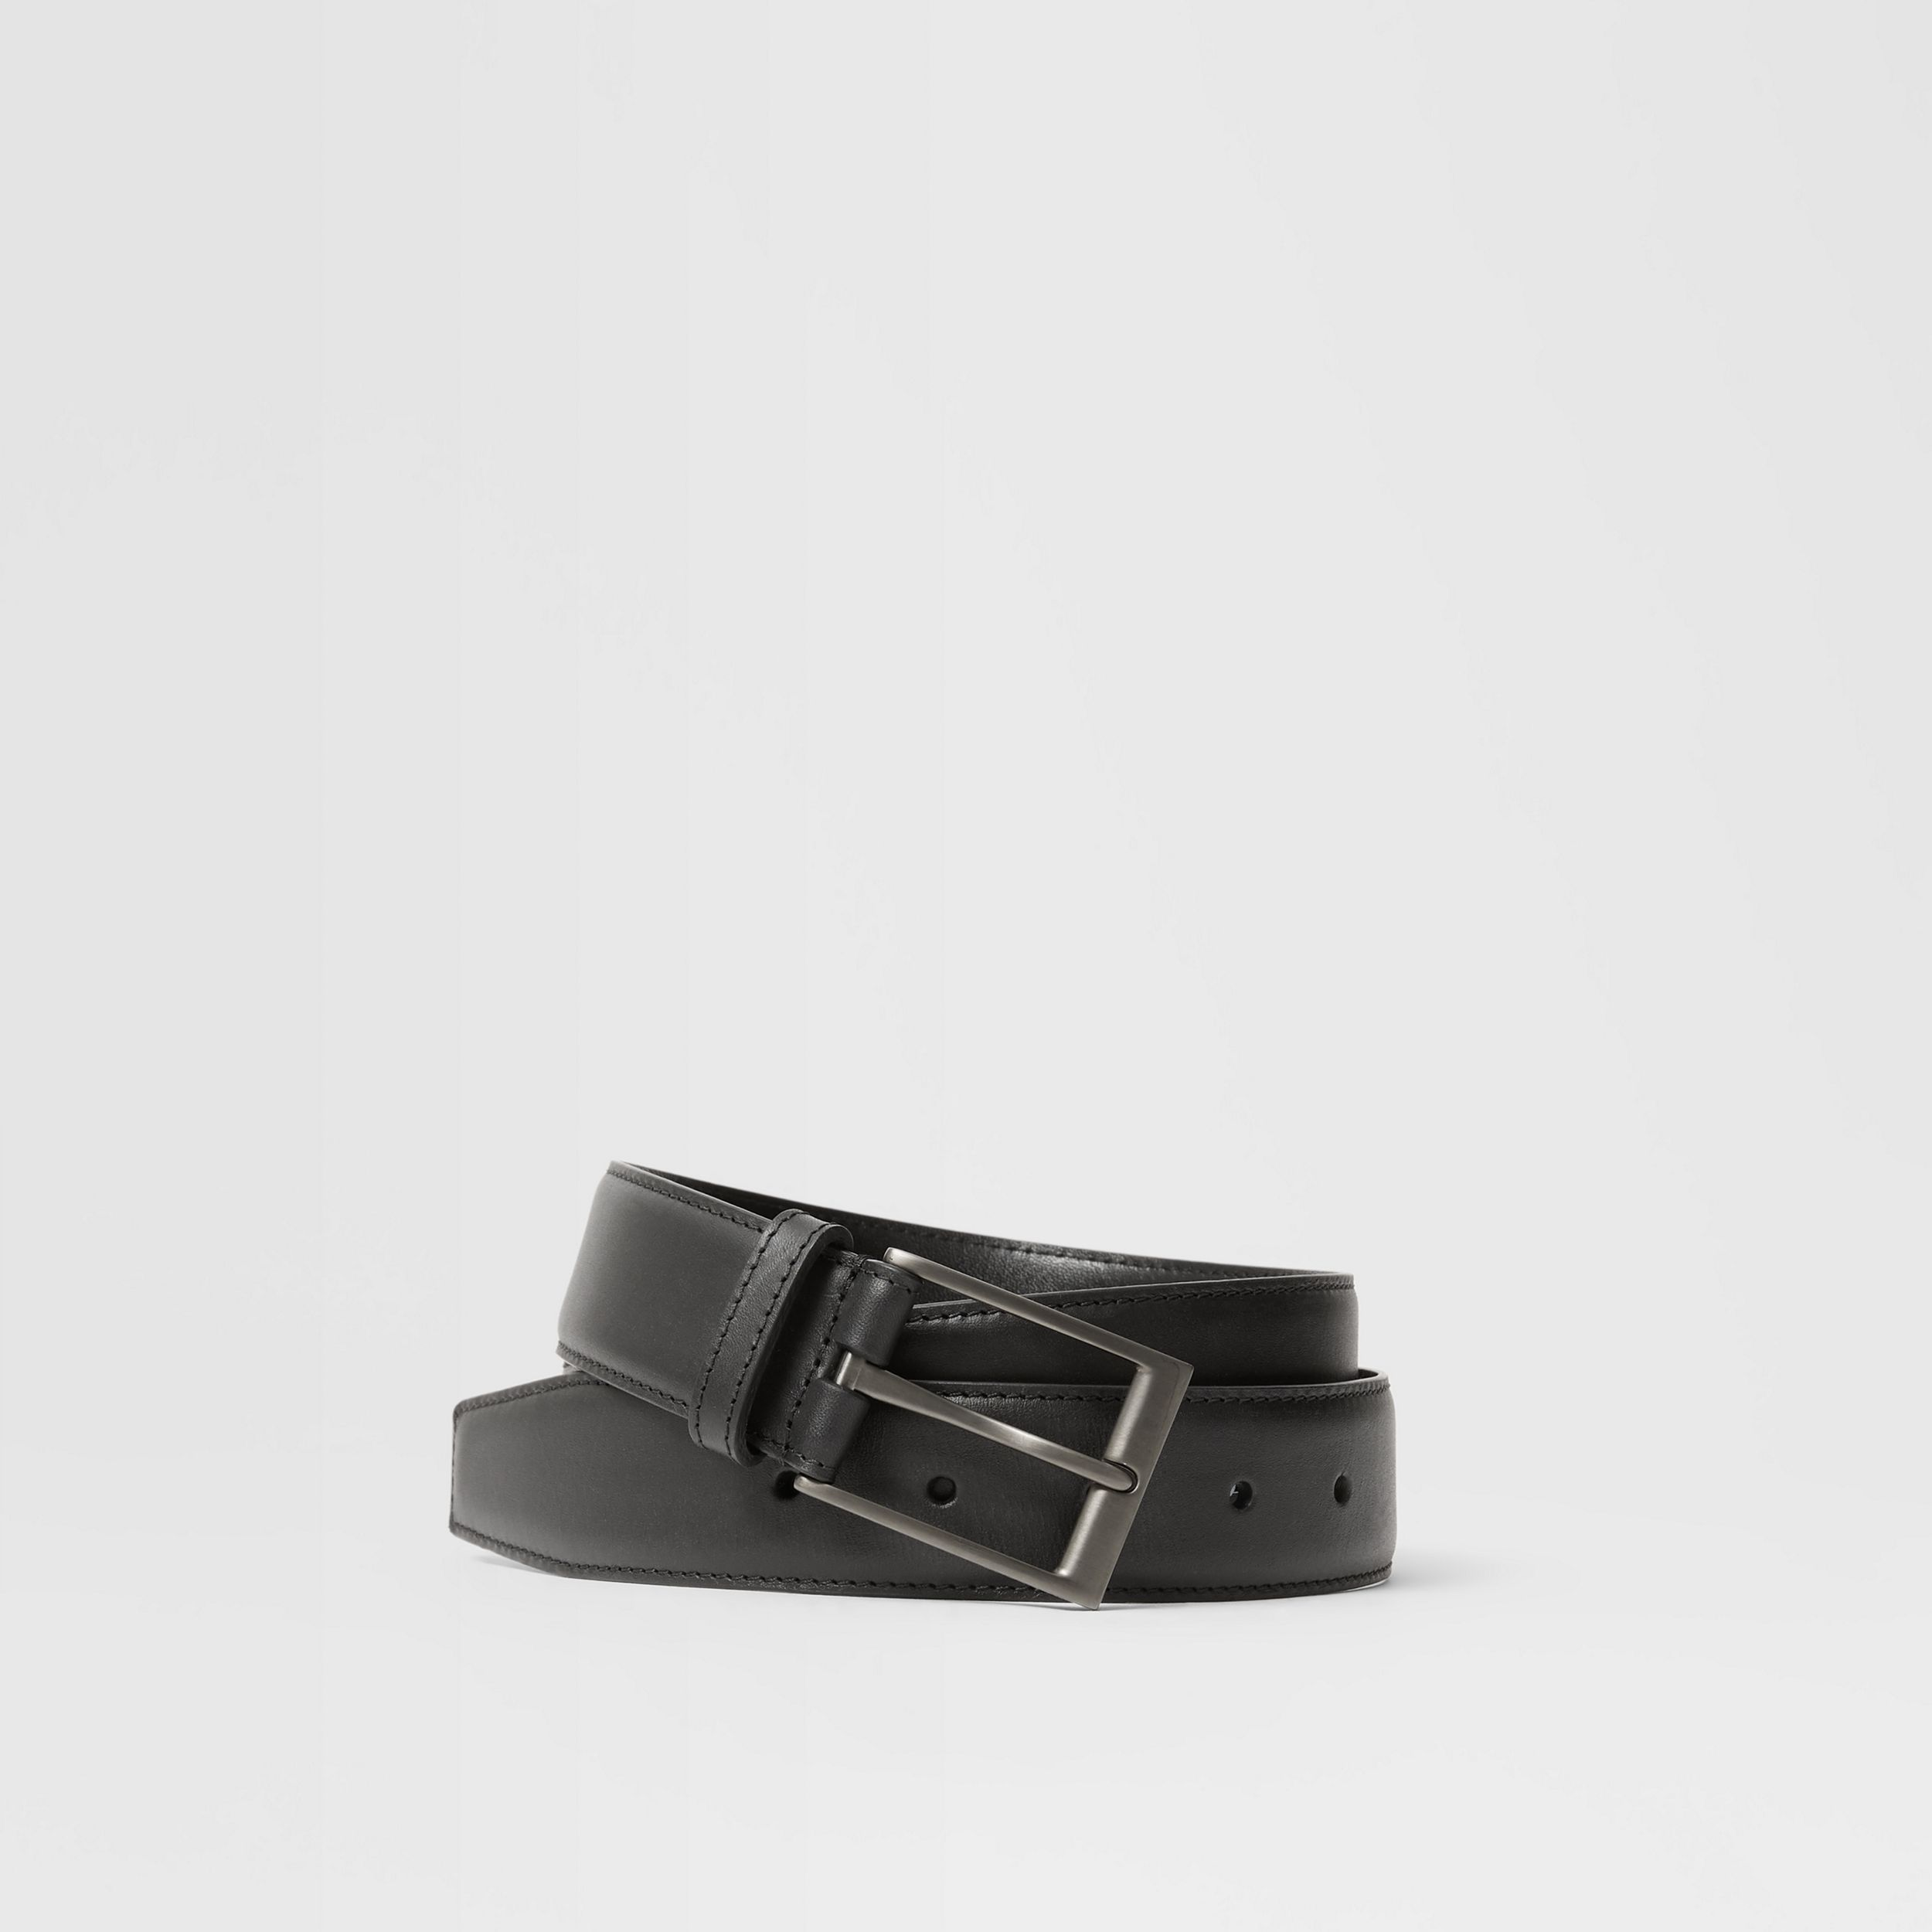 Leather Belt in Black - Men | Burberry - 1